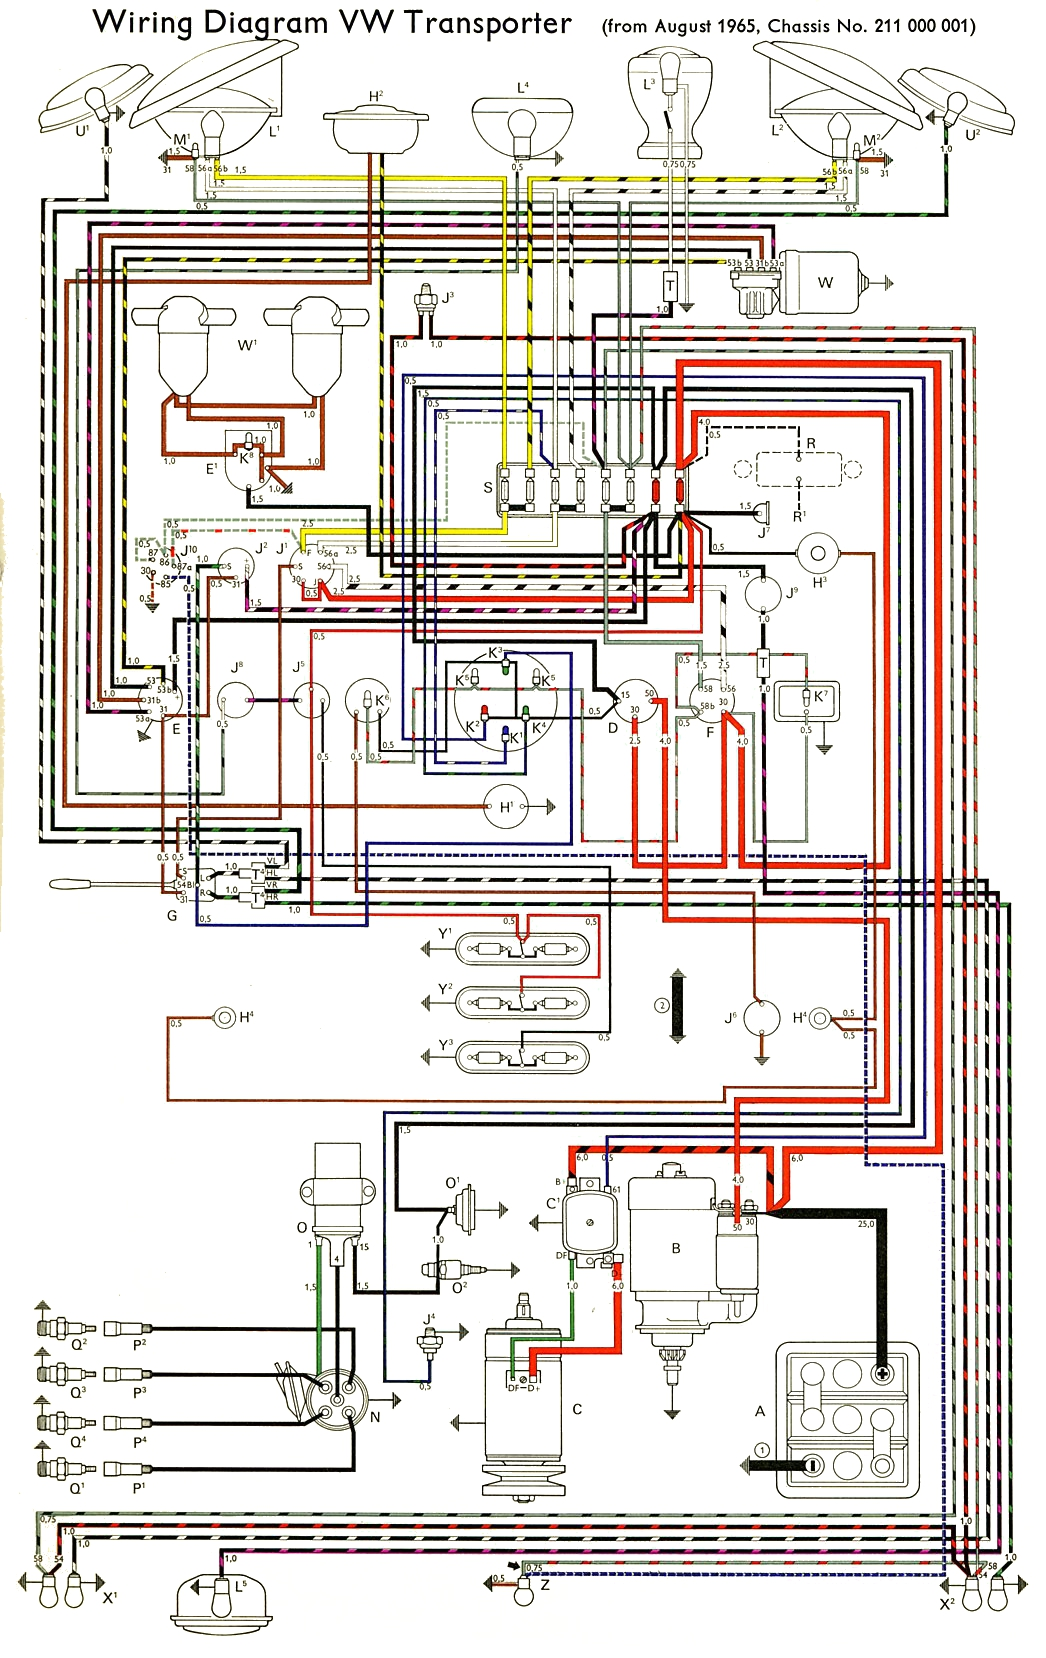 bus_66 electrical wiring diagrams beetle 1971 electrical wiring 1970 vw beetle electrical wiring diagram at soozxer.org